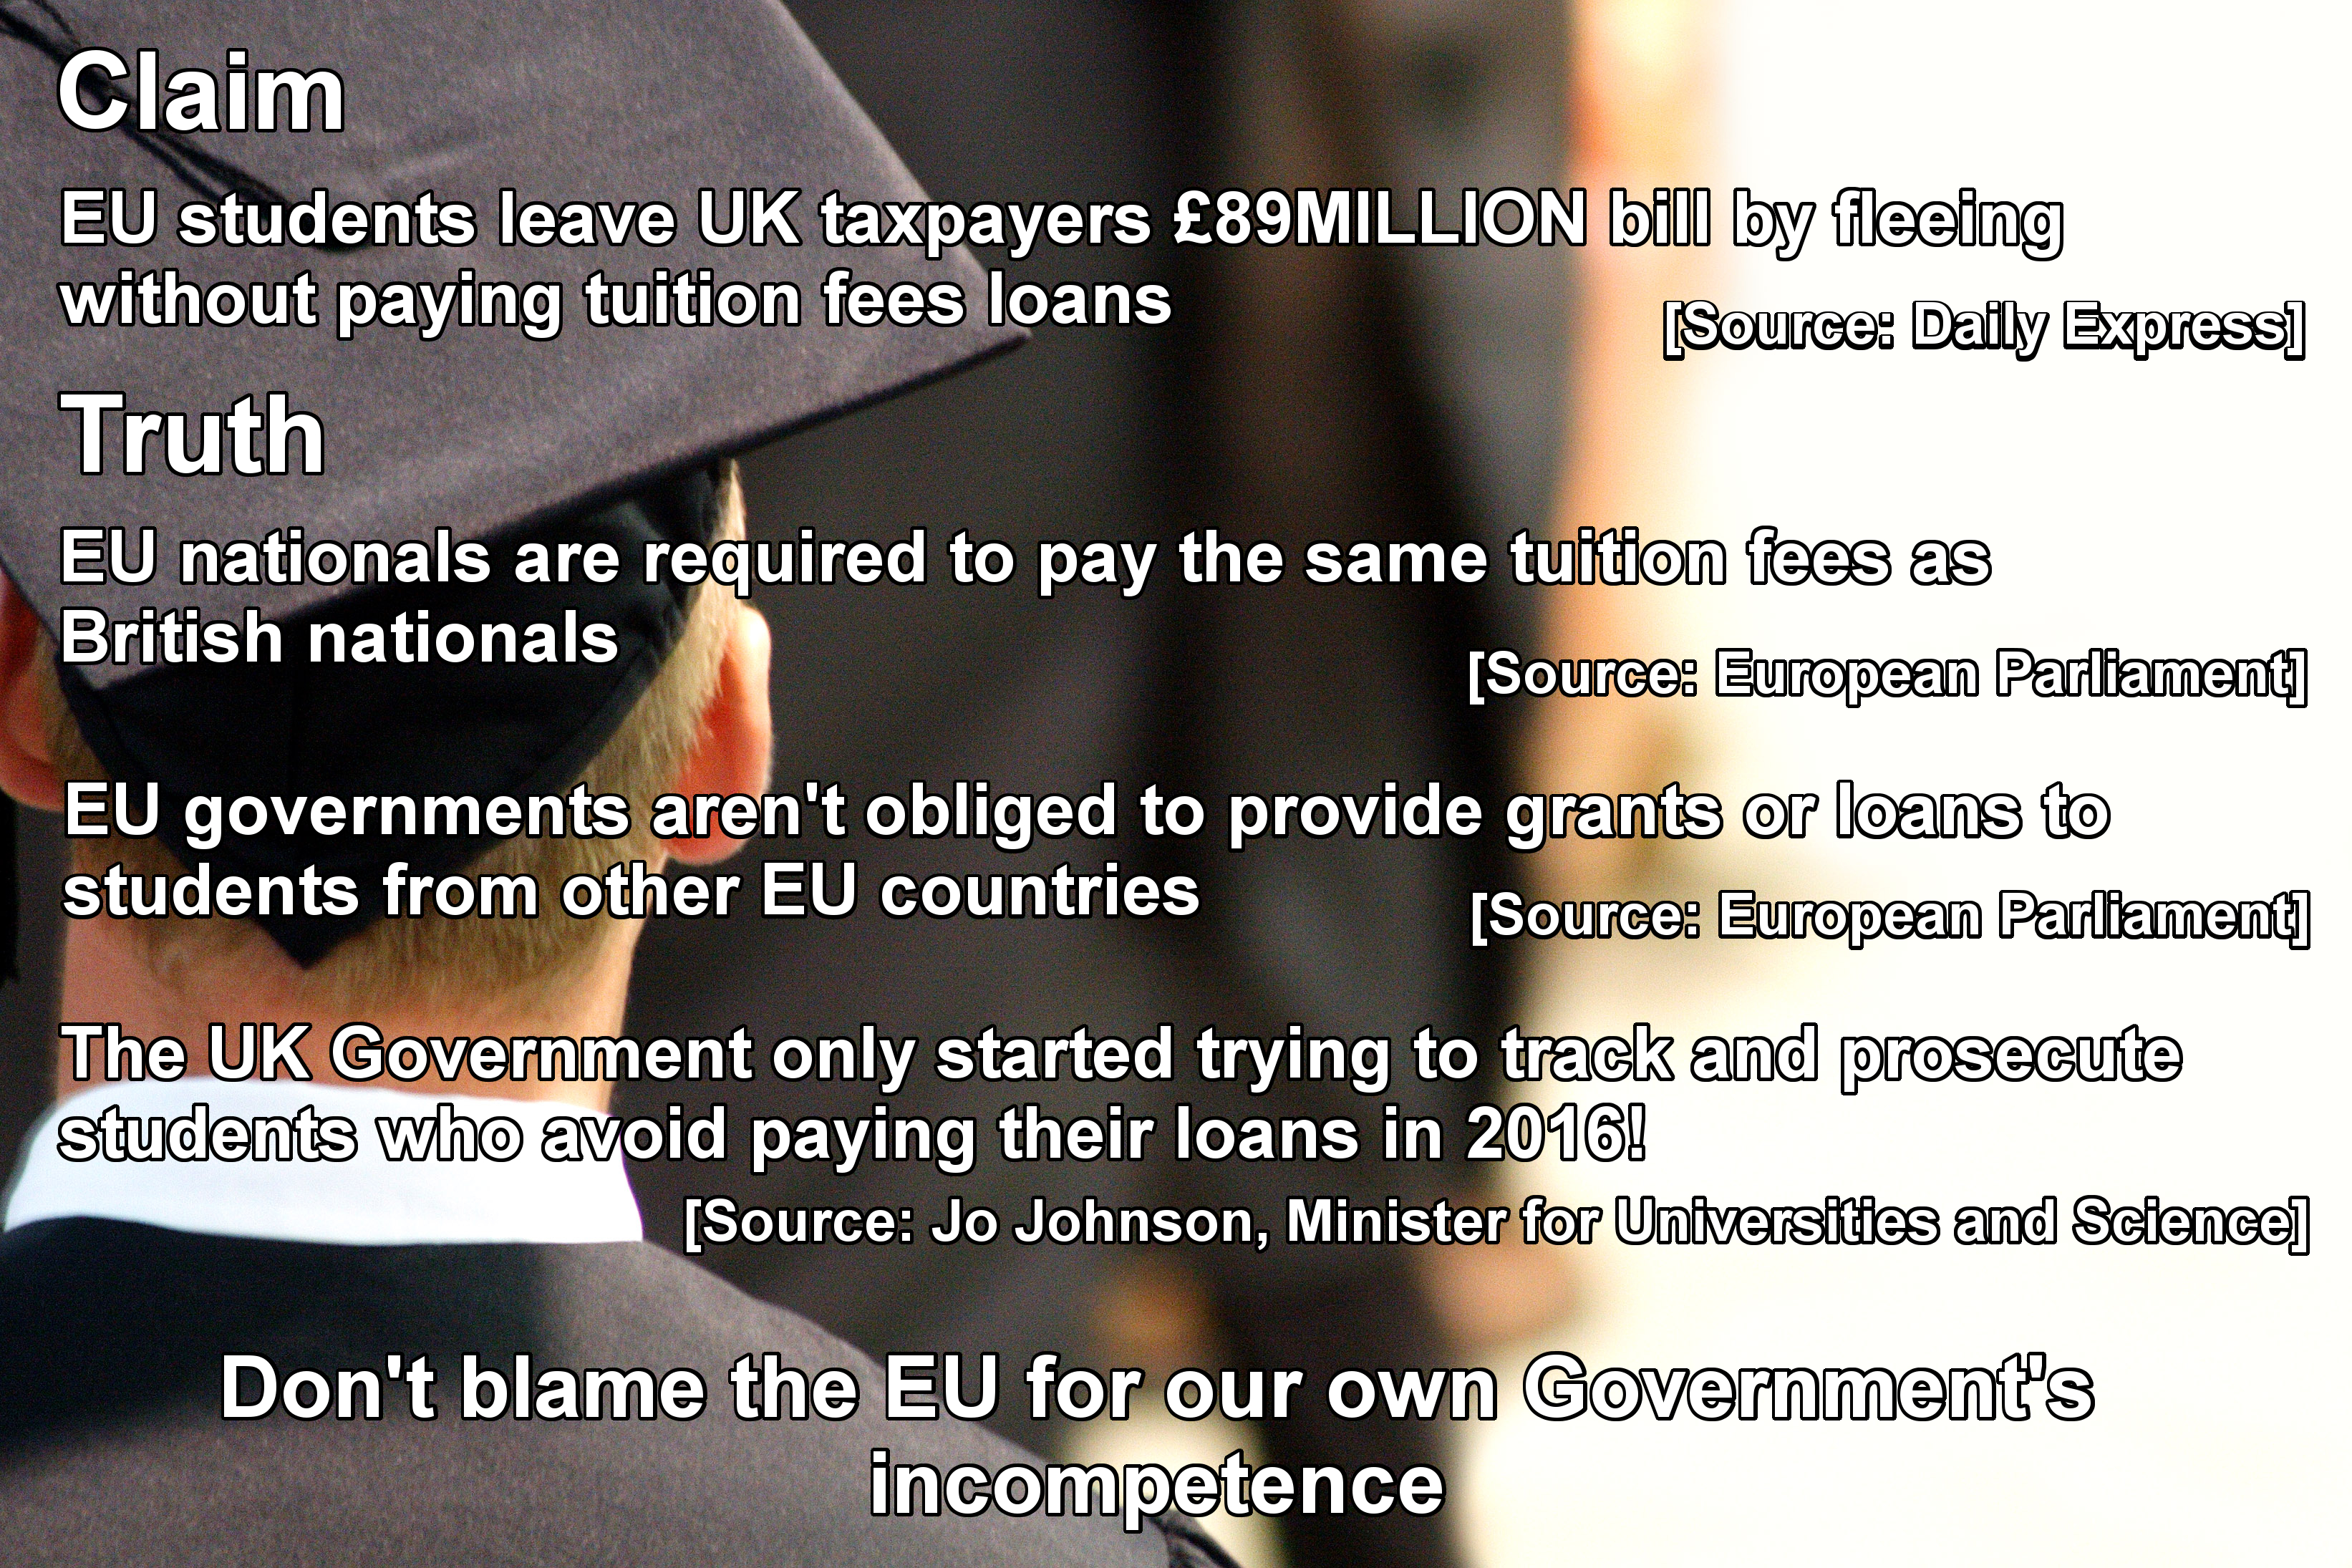 Members states are not required to give EU students grants or loans